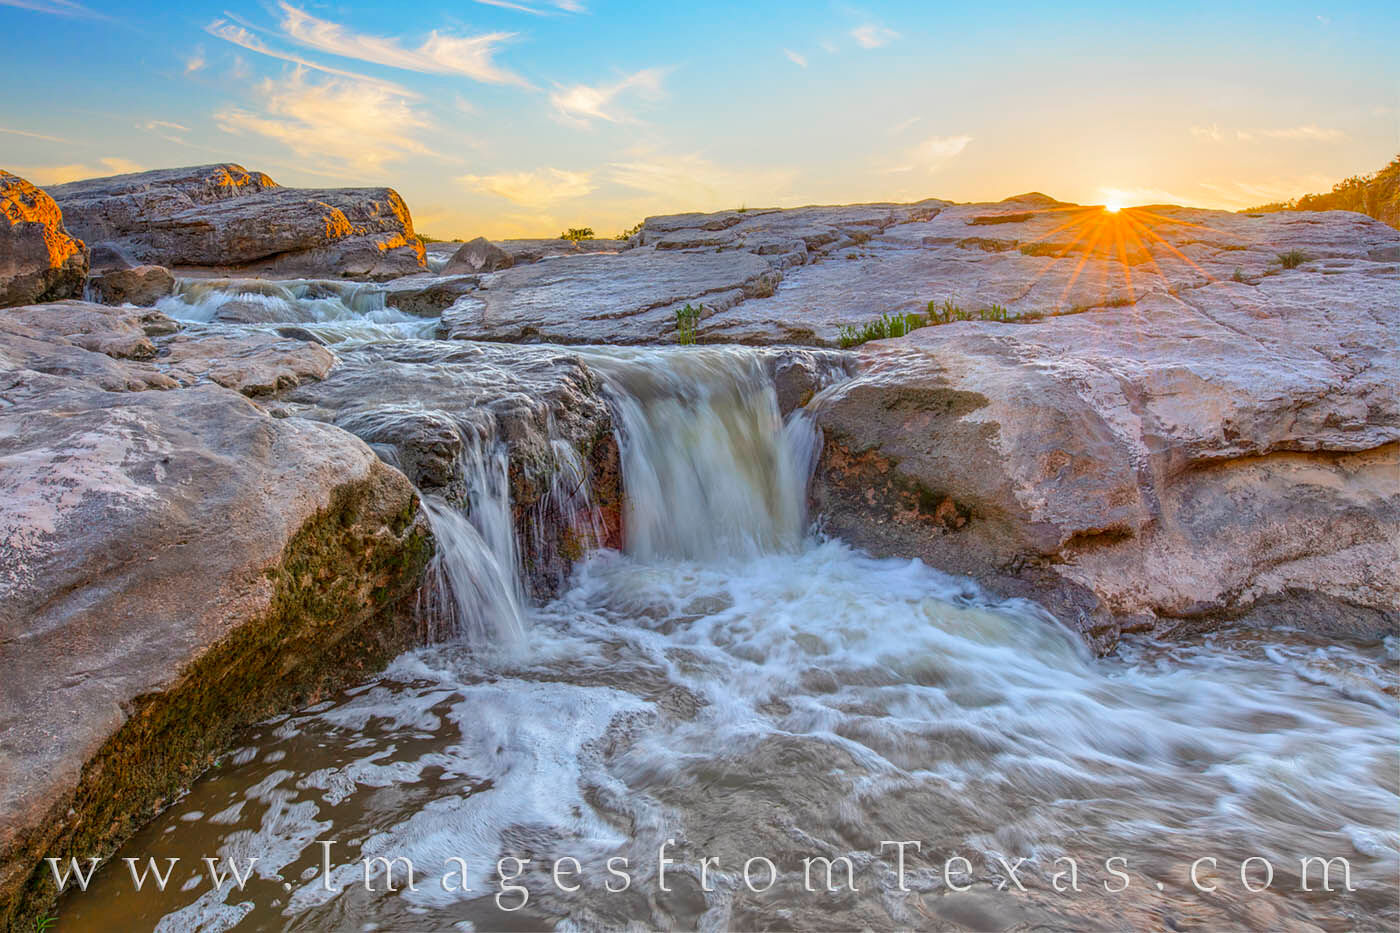 After an afternoon rain, this cascade pouring over the limestone rock in Pedernales Falls State Park made for a nice composition...